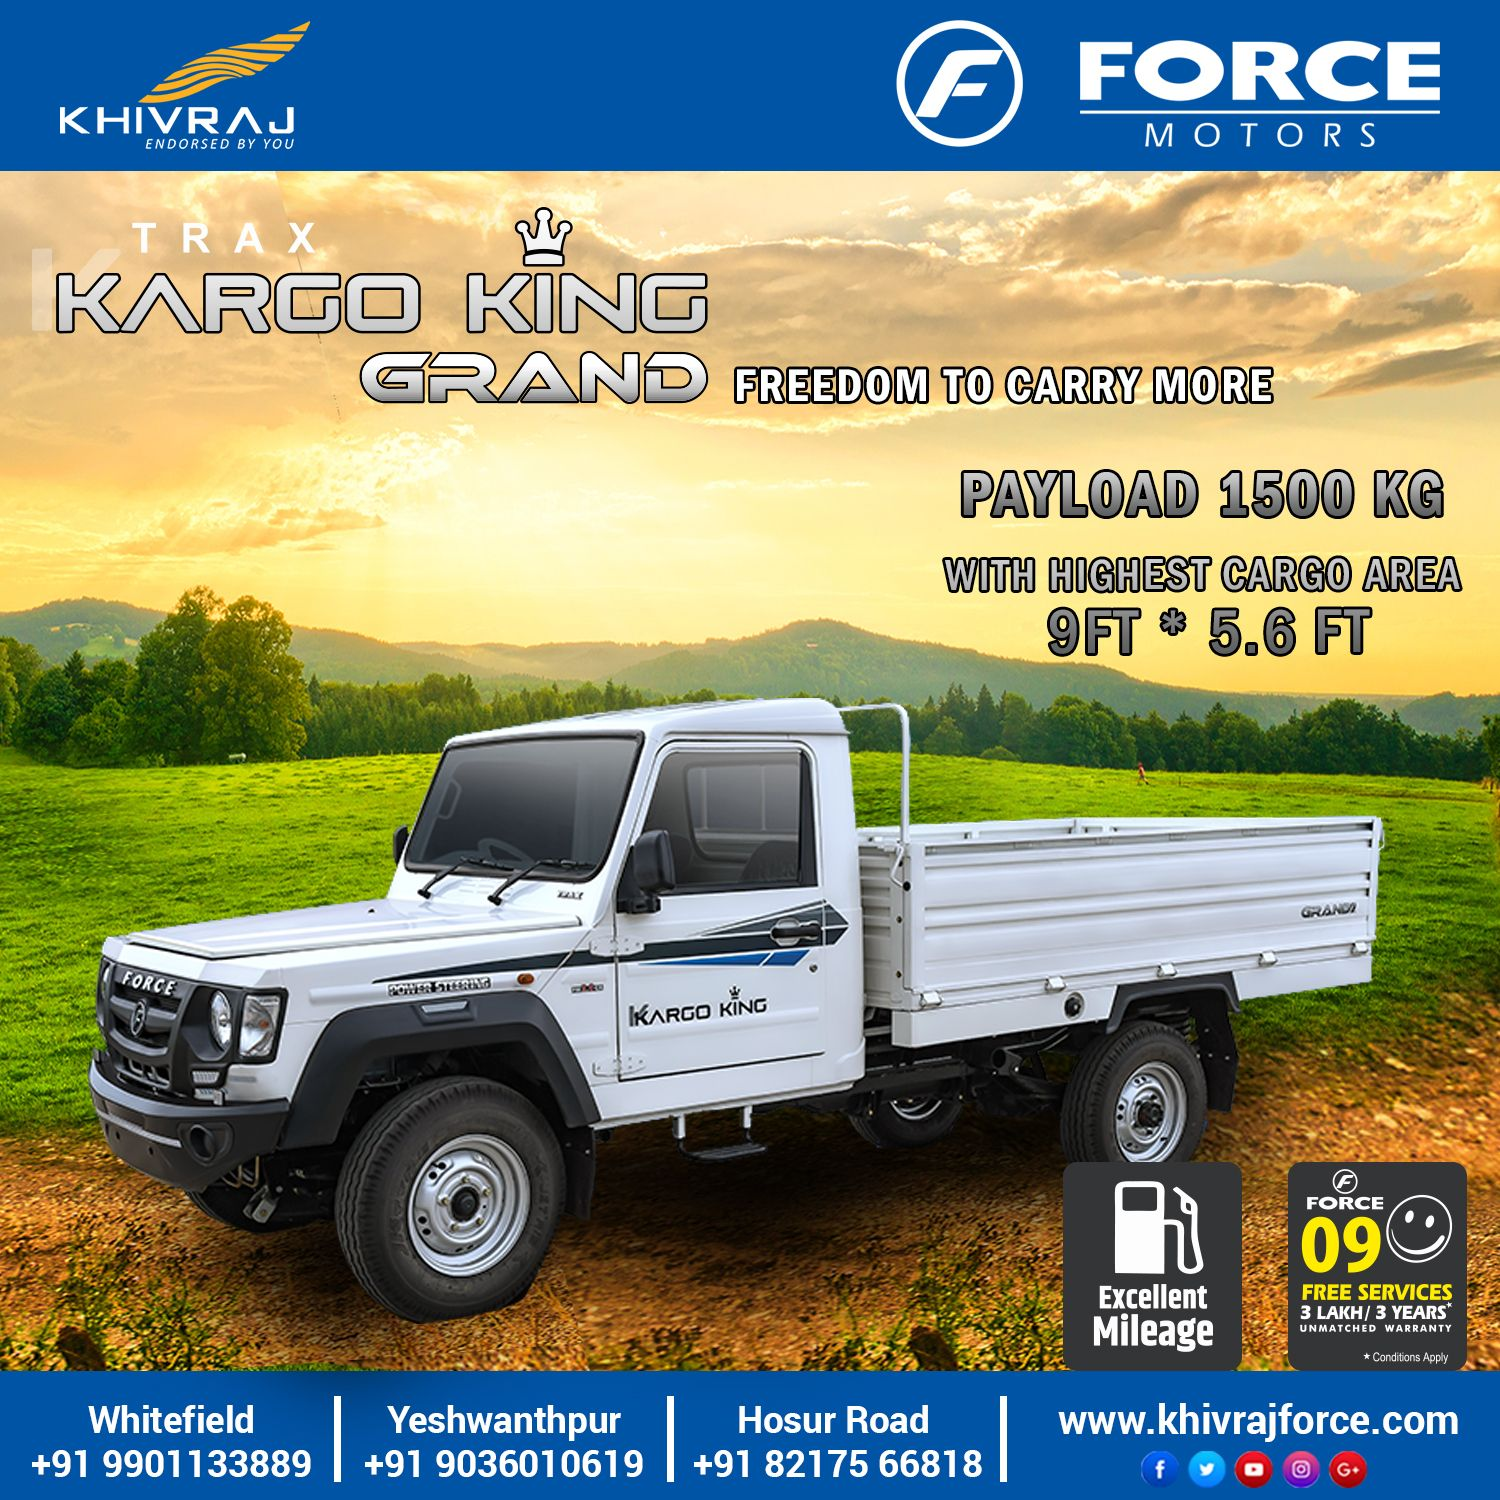 Kargo King Grand Turbo Charged Engine Commercial Vehicle Power To Weight Ratio